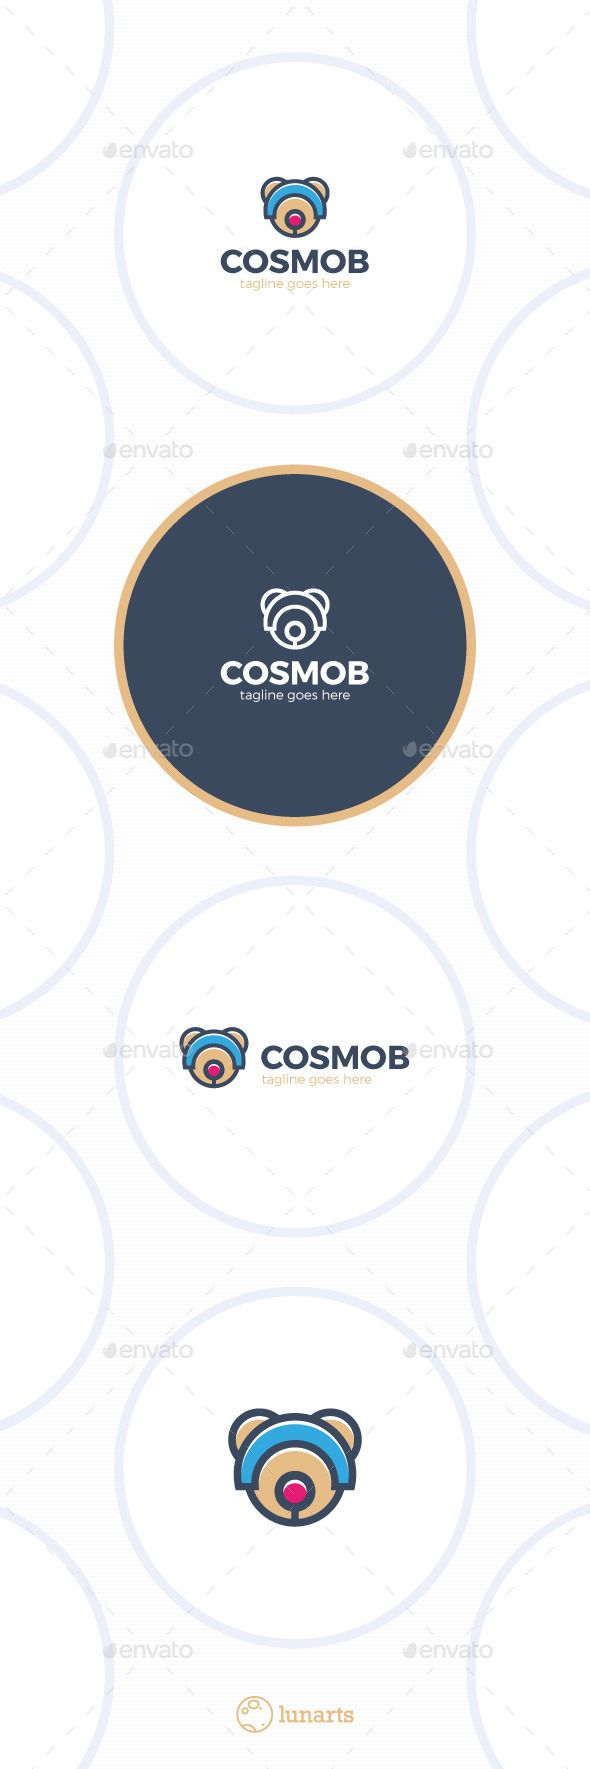 Space Bear Logo  Cosmo — Vector EPS #color #app • Available here → https://graphicriver.net/item/space-bear-logo-cosmo/11909638?ref=pxcr